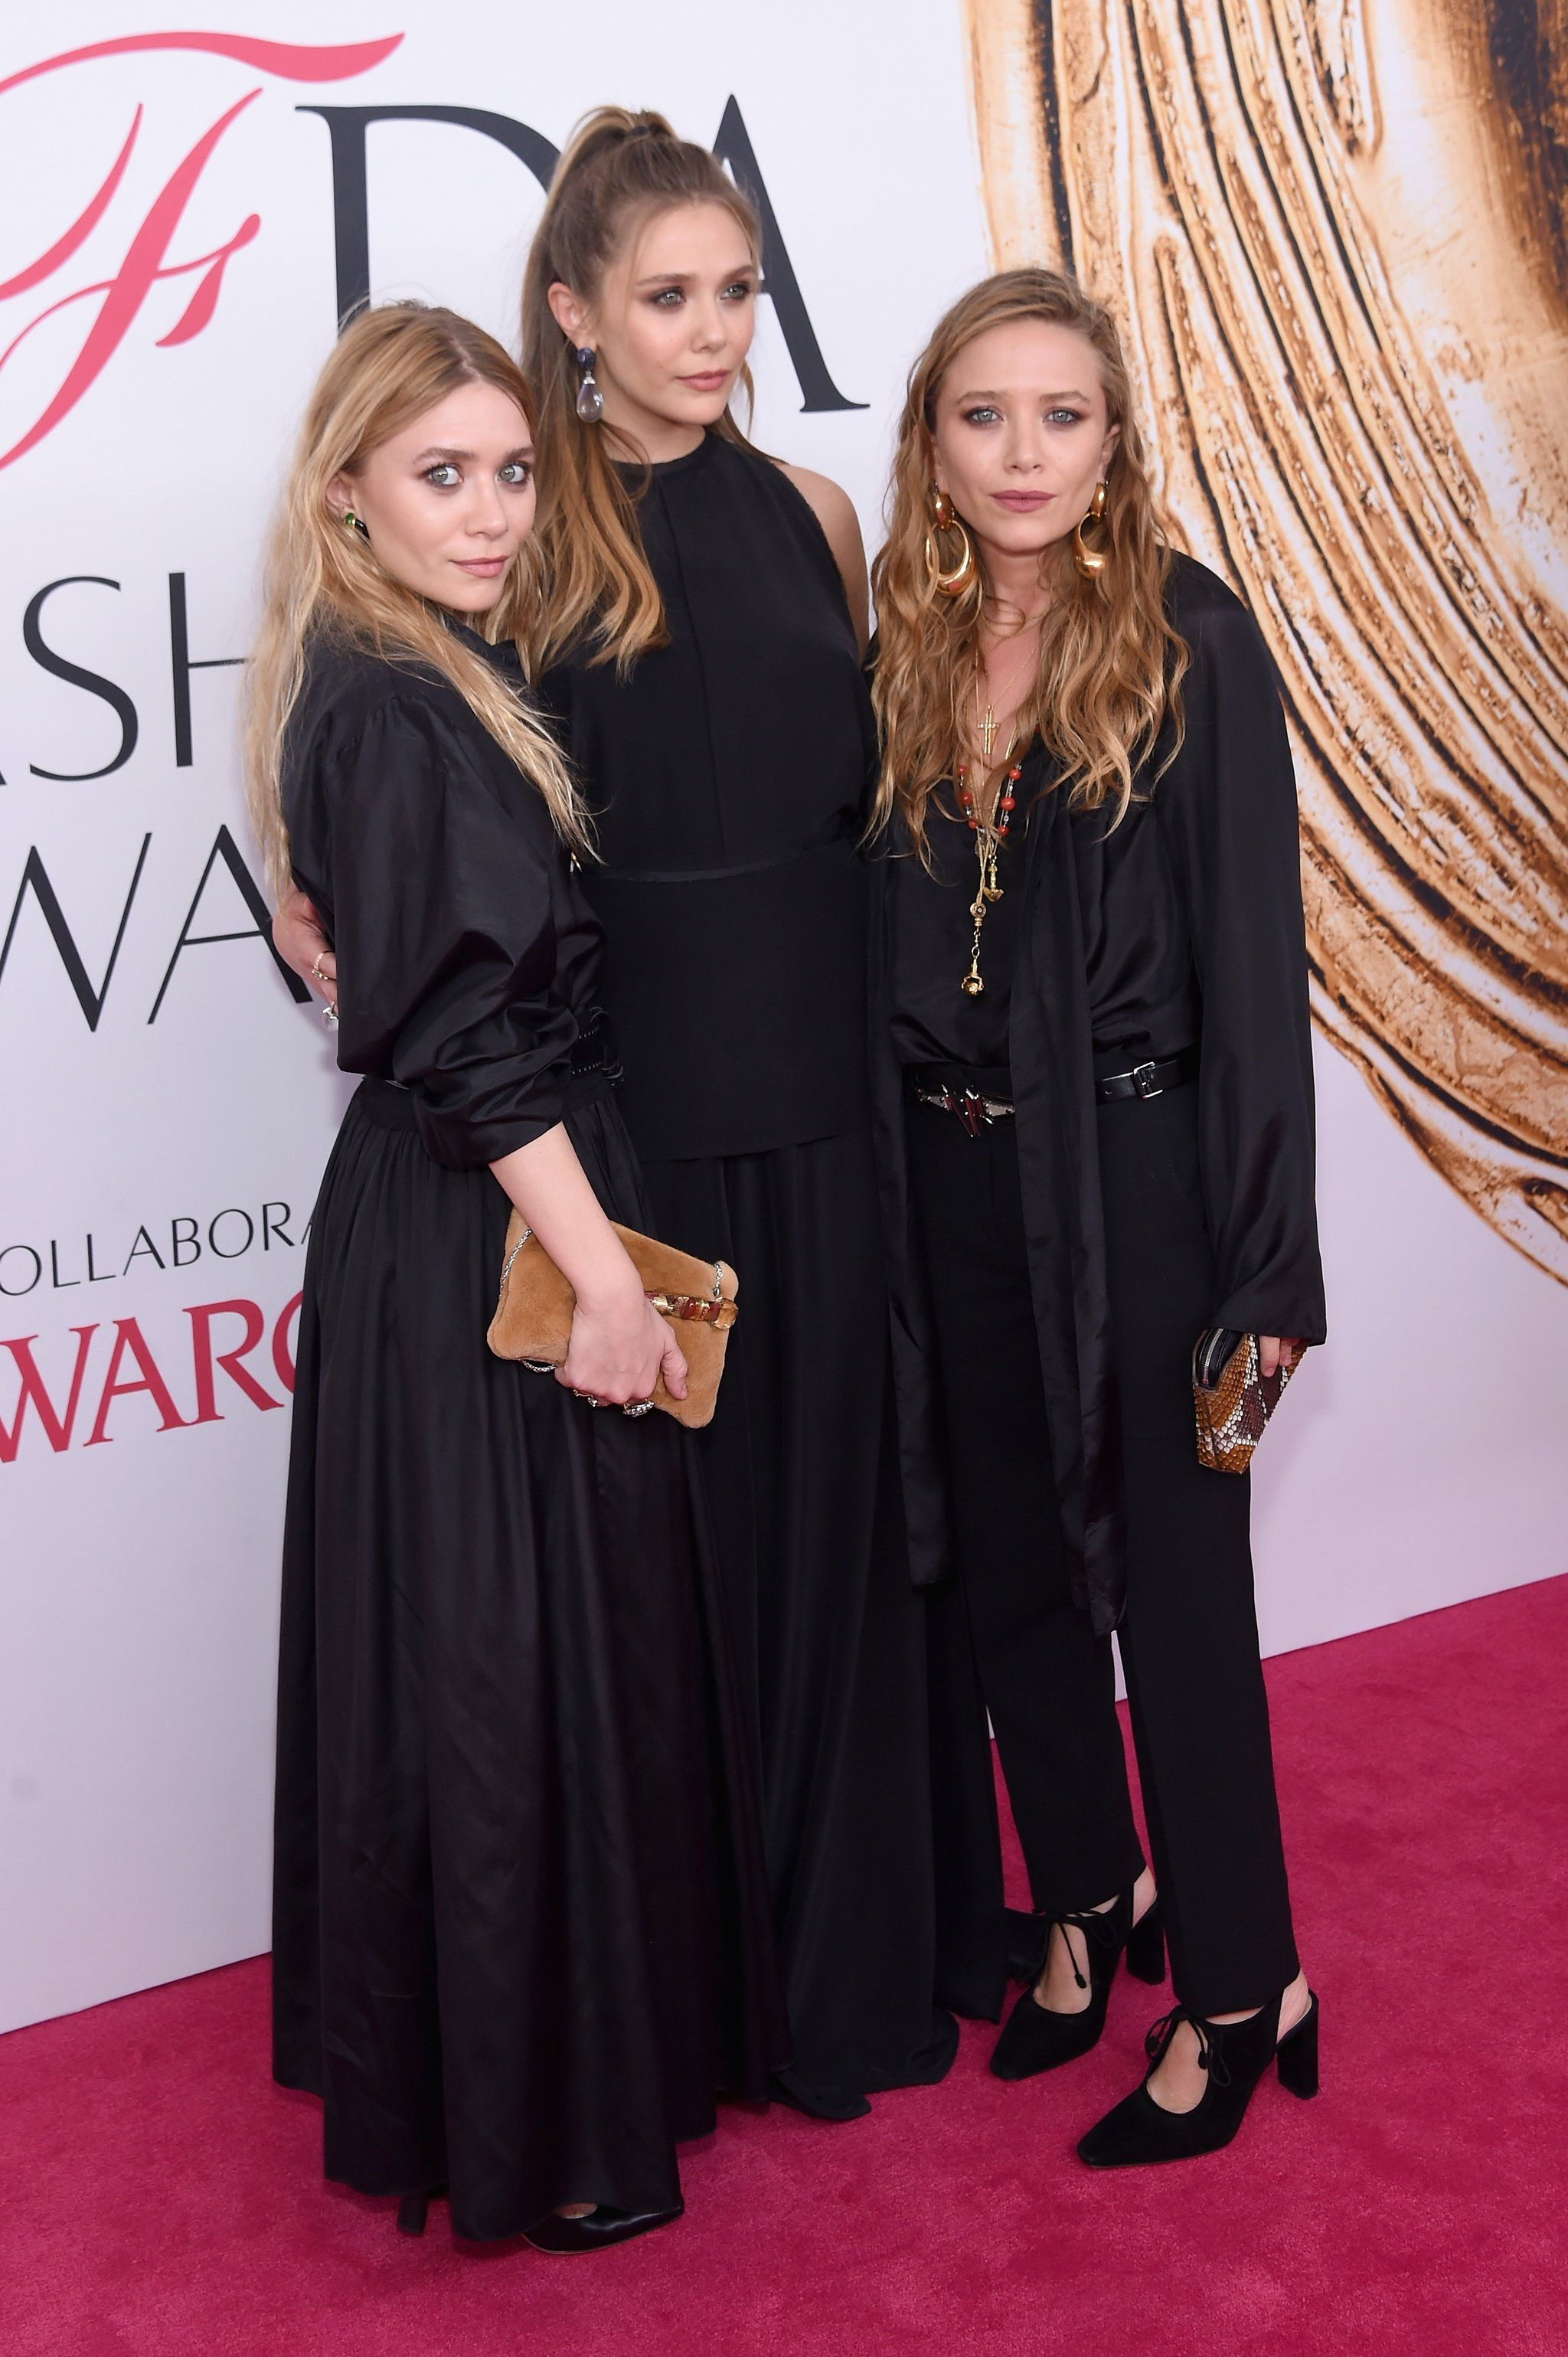 images An Olsen Twin Sighting Is Like Seeing a Snow Leopard, So This Is a Special Day